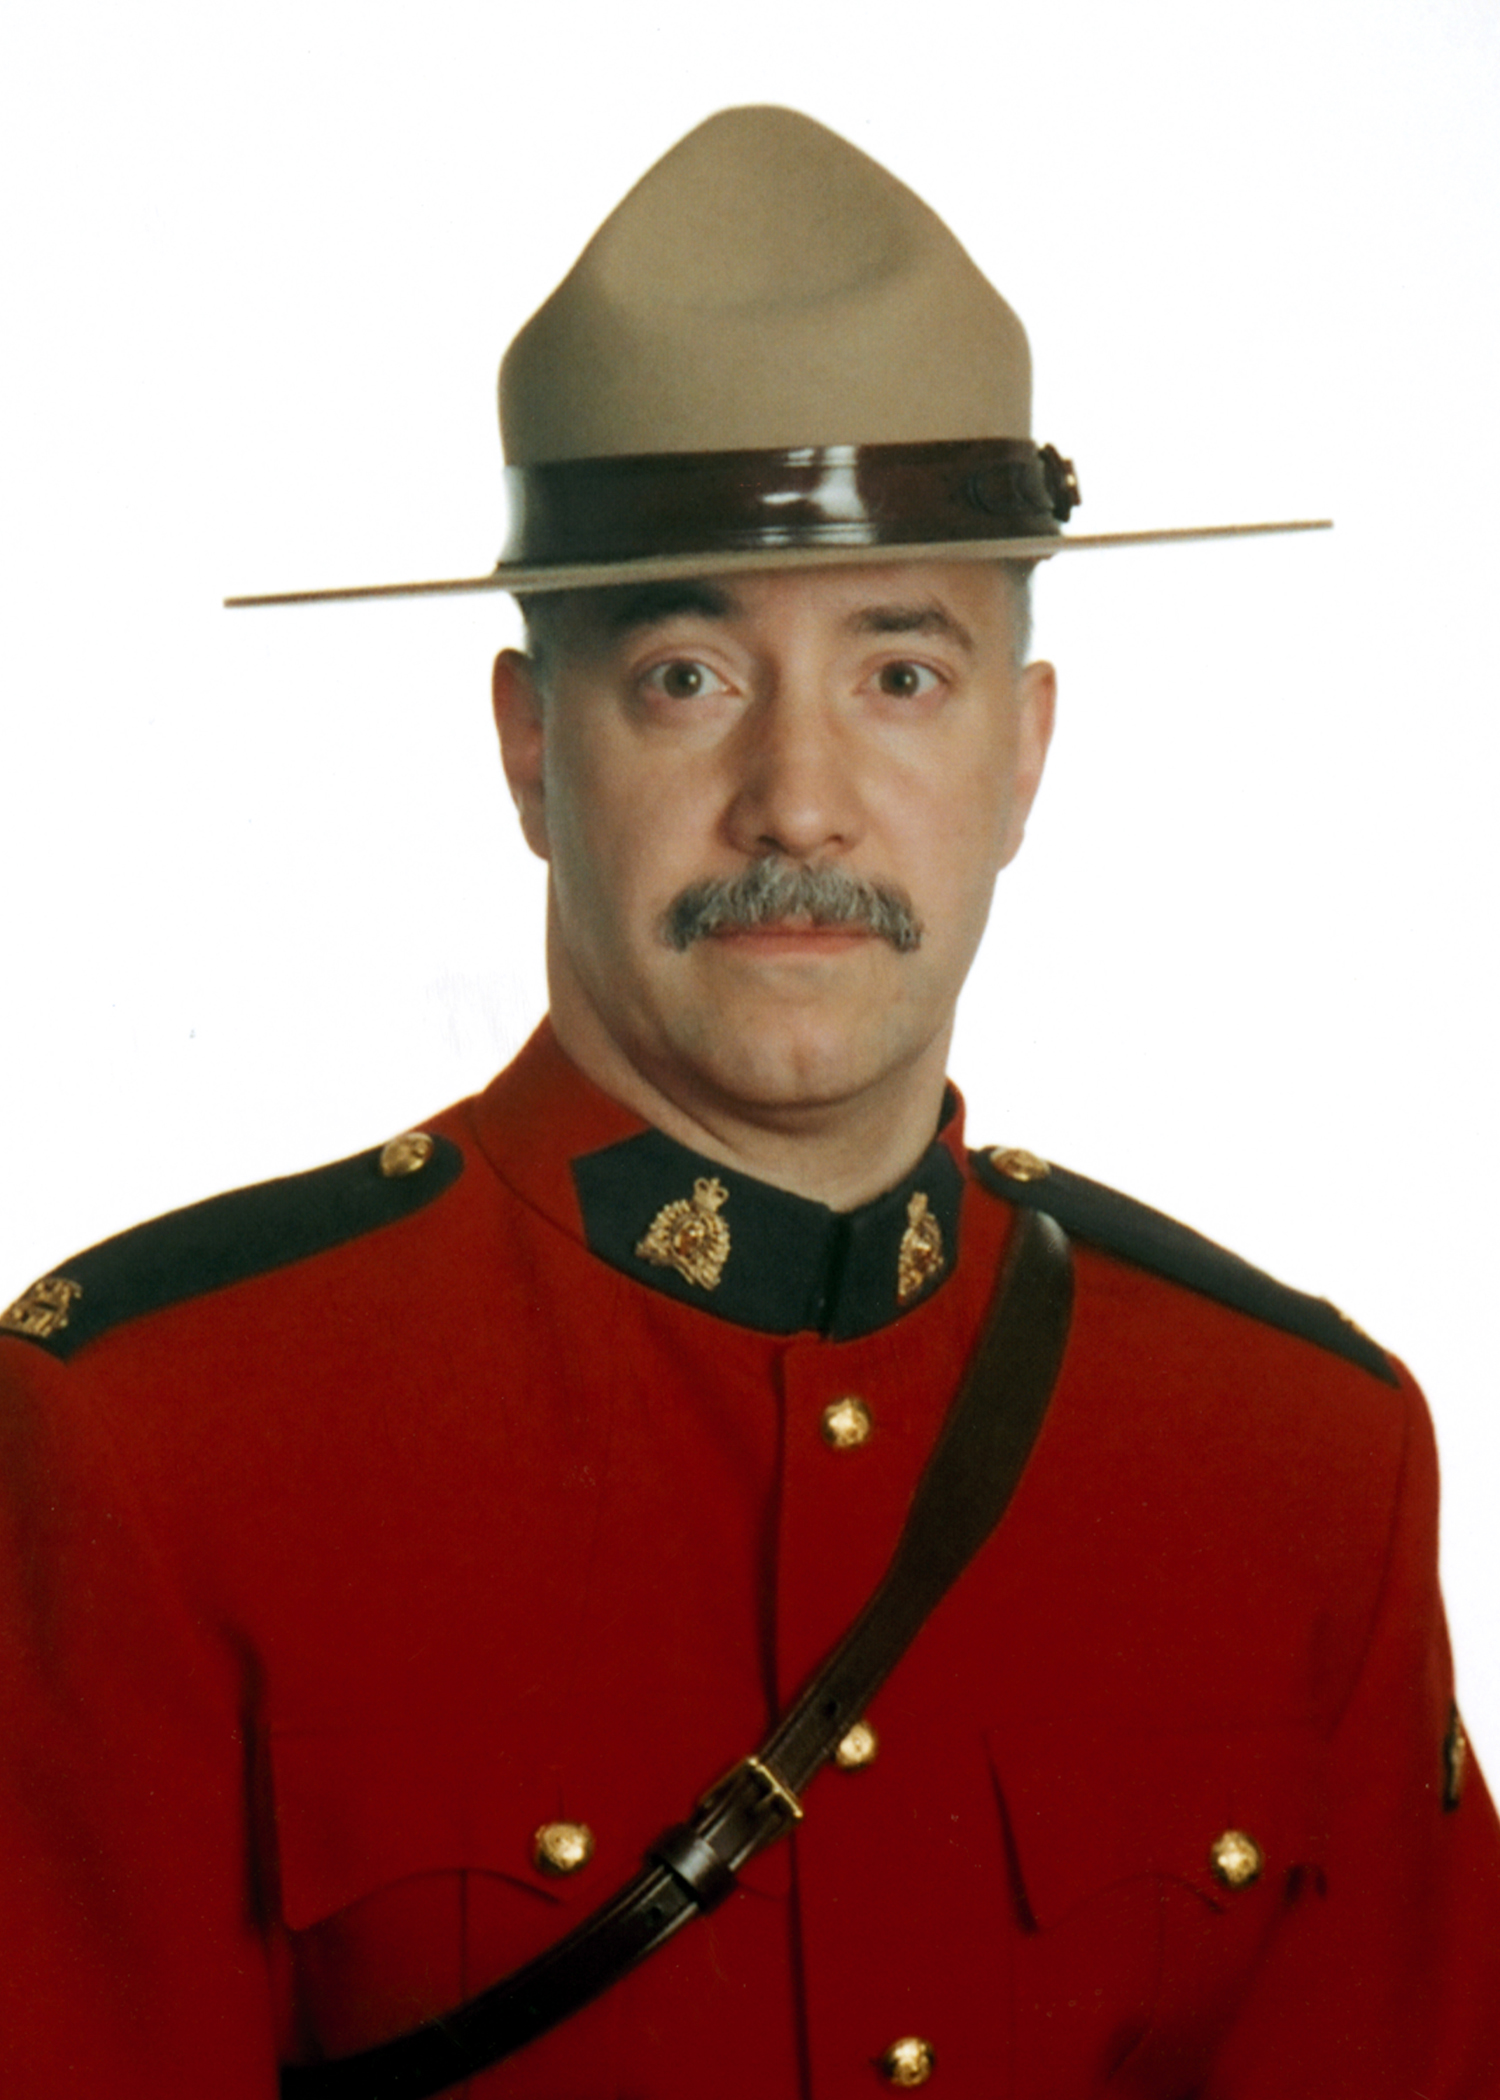 Constable José Manuel Agostinho – © Her Majesty the Queen in Right of Canada as represented by the Royal Canadian Mounted Police